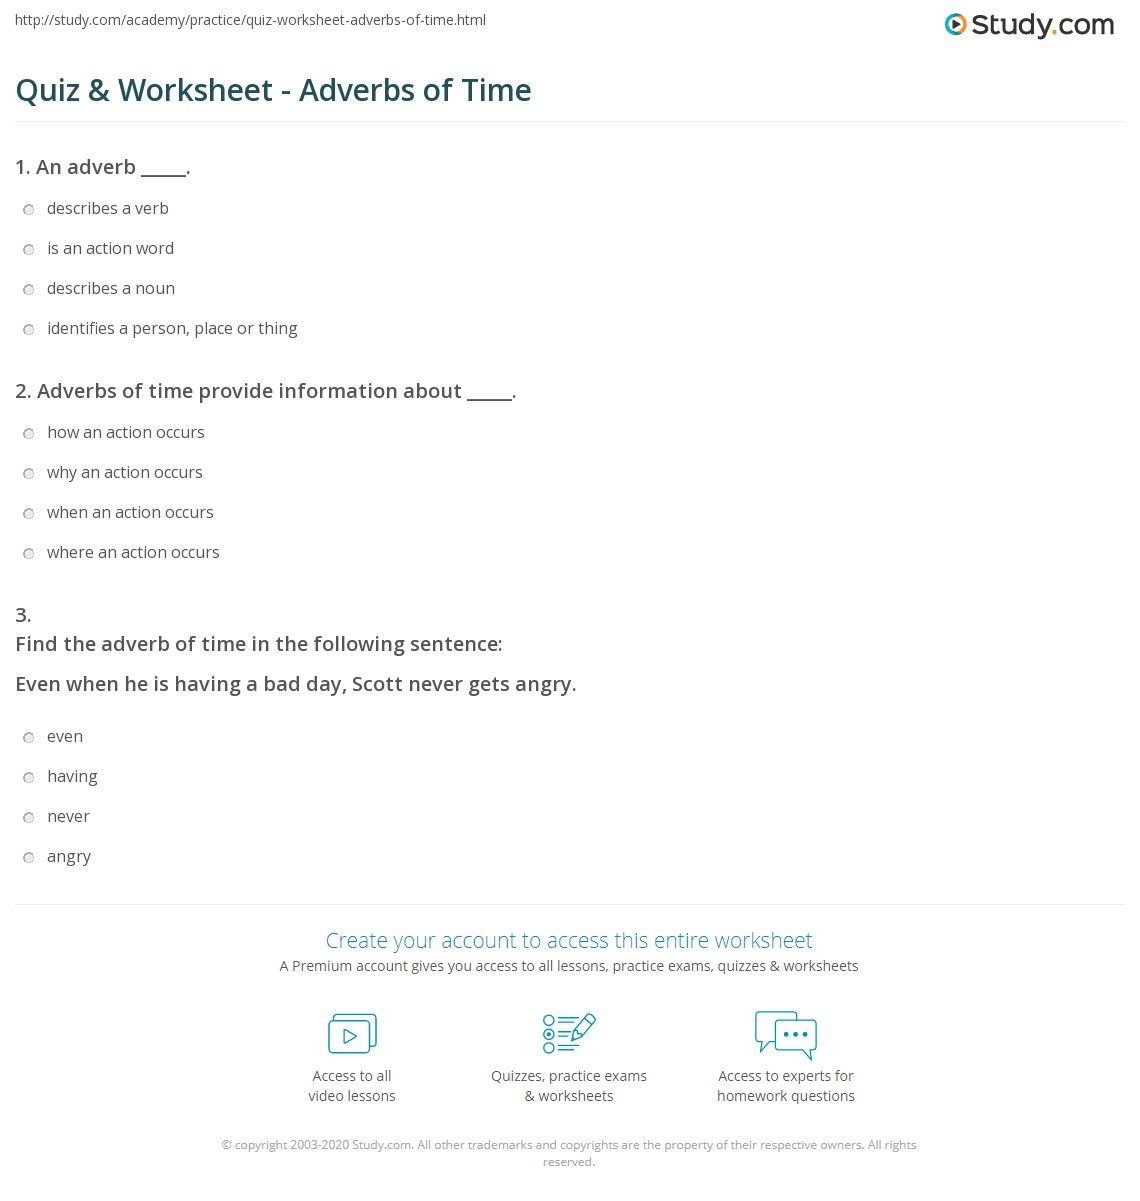 Quiz Worksheet Adverbs Of Time Study